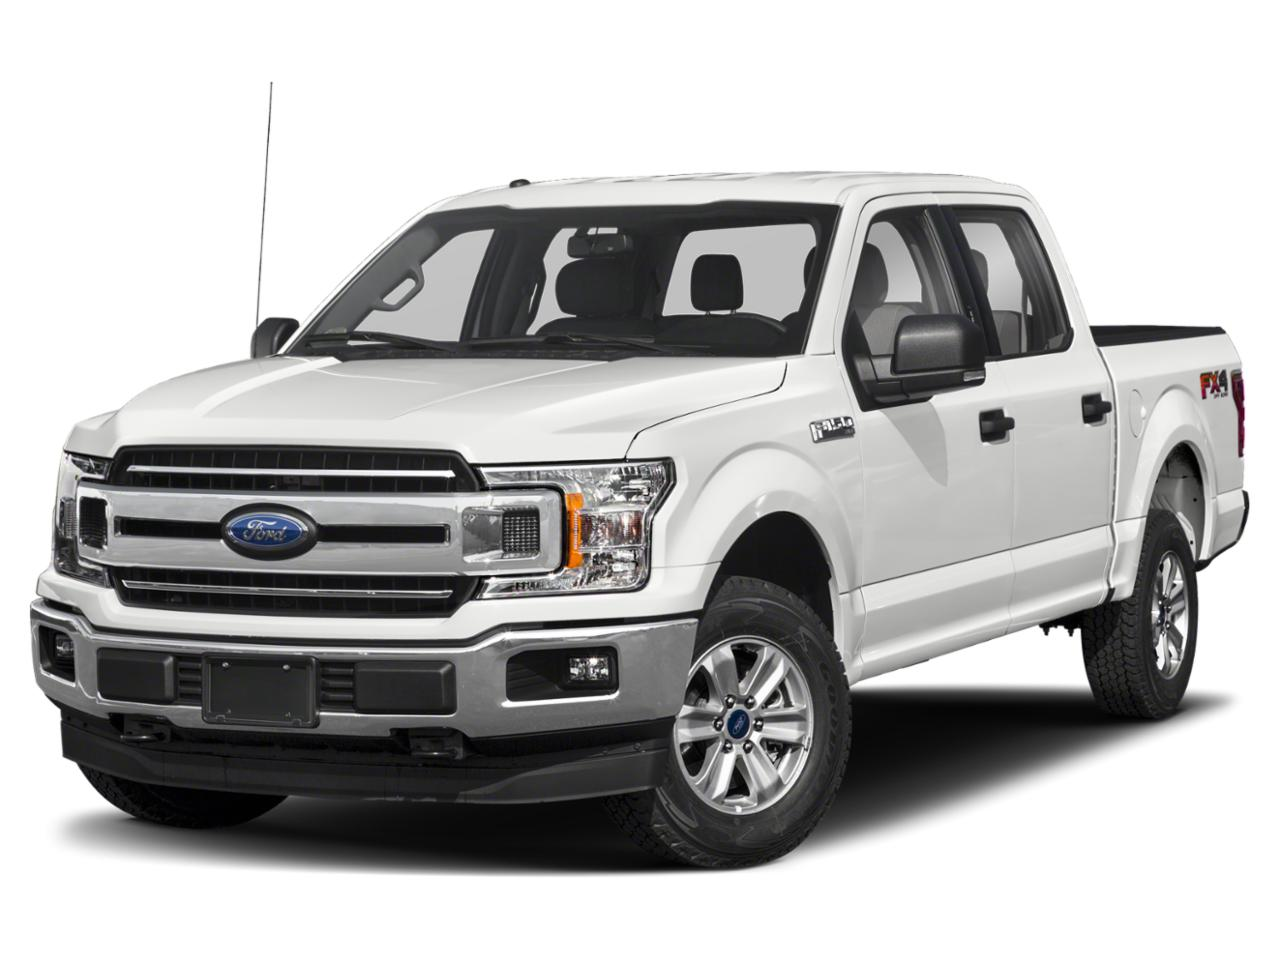 2018 Ford F-150 Vehicle Photo in Spokane, WA 99207